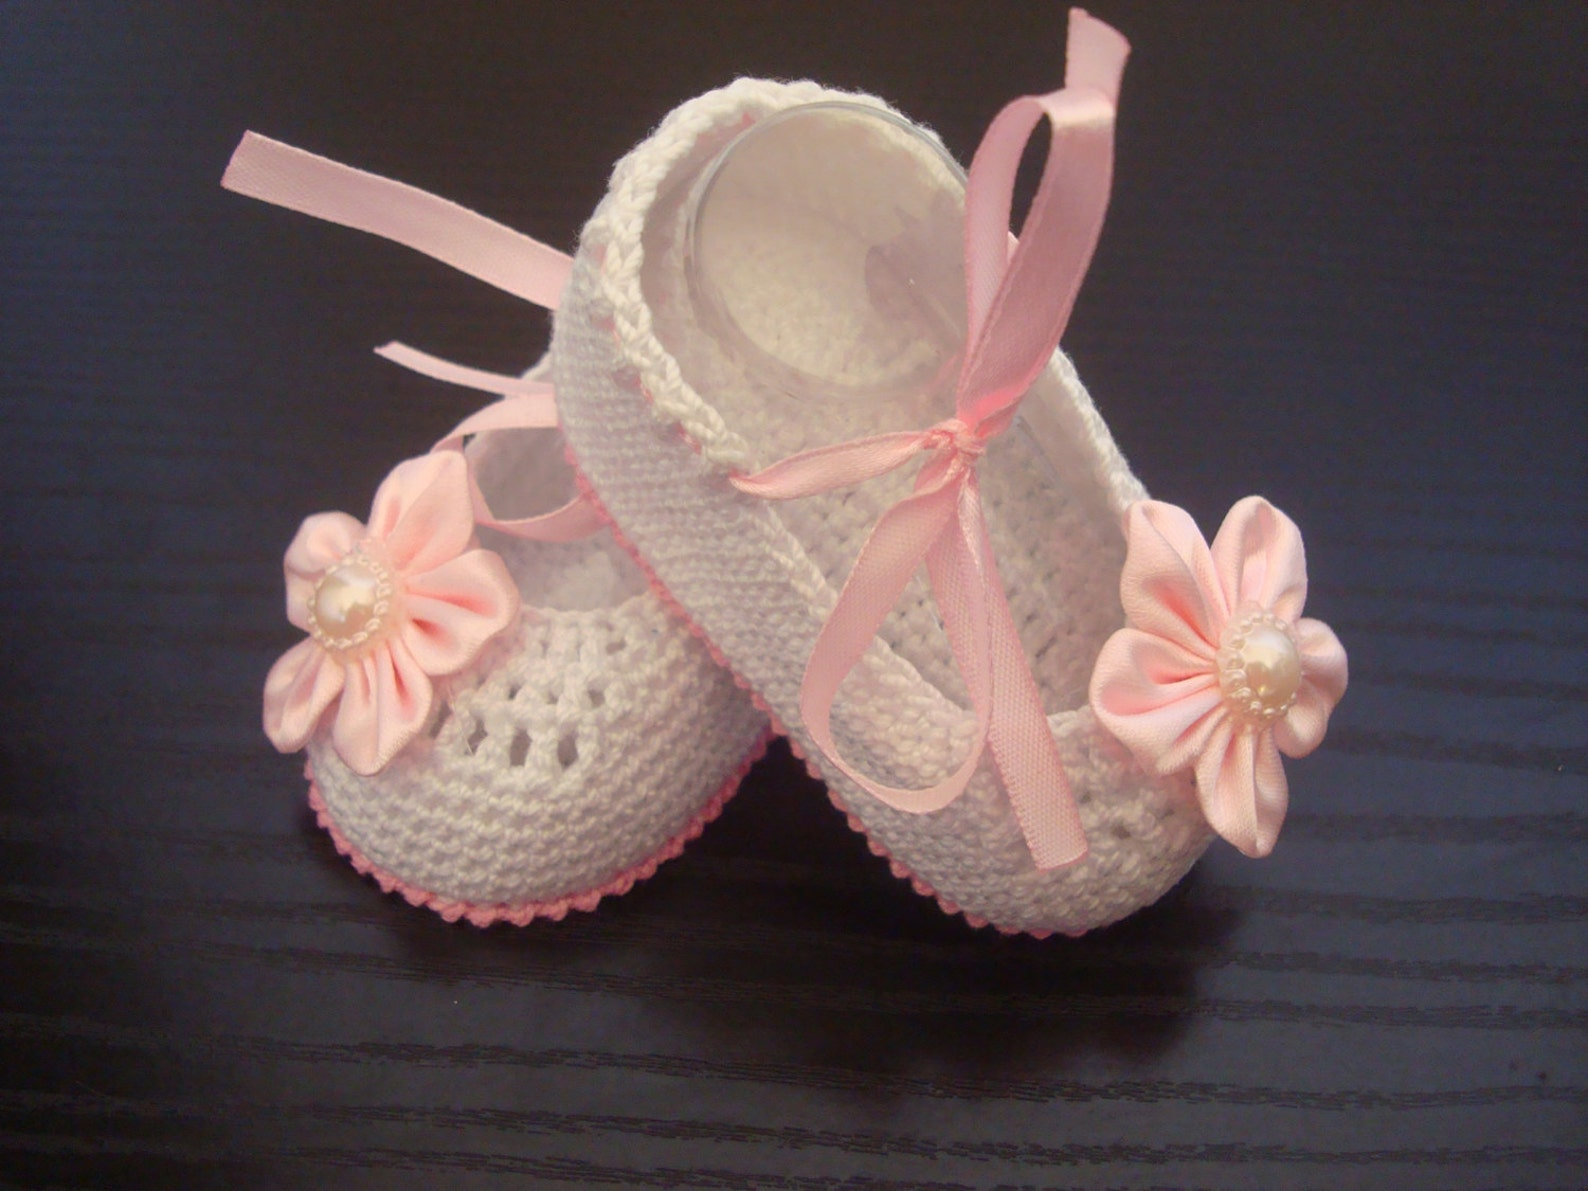 white crochet baby girl booties - ballet slippers - flower shoes. ready to ship!